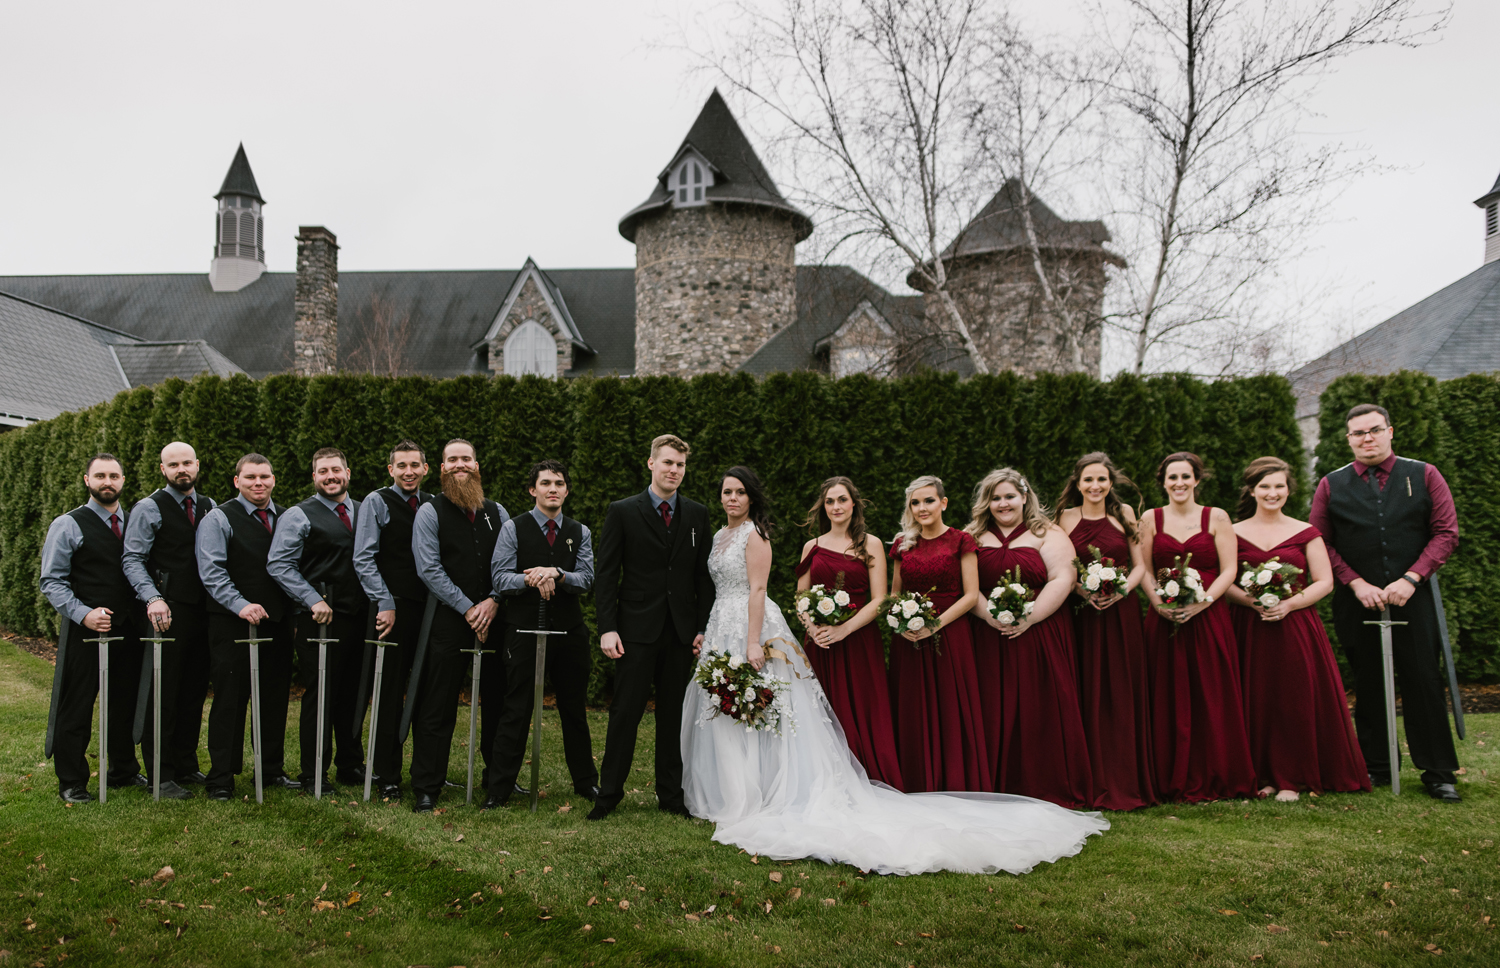 Castle-Farms-Game-of-Thrones-wedding-northern-michigan (39).jpg